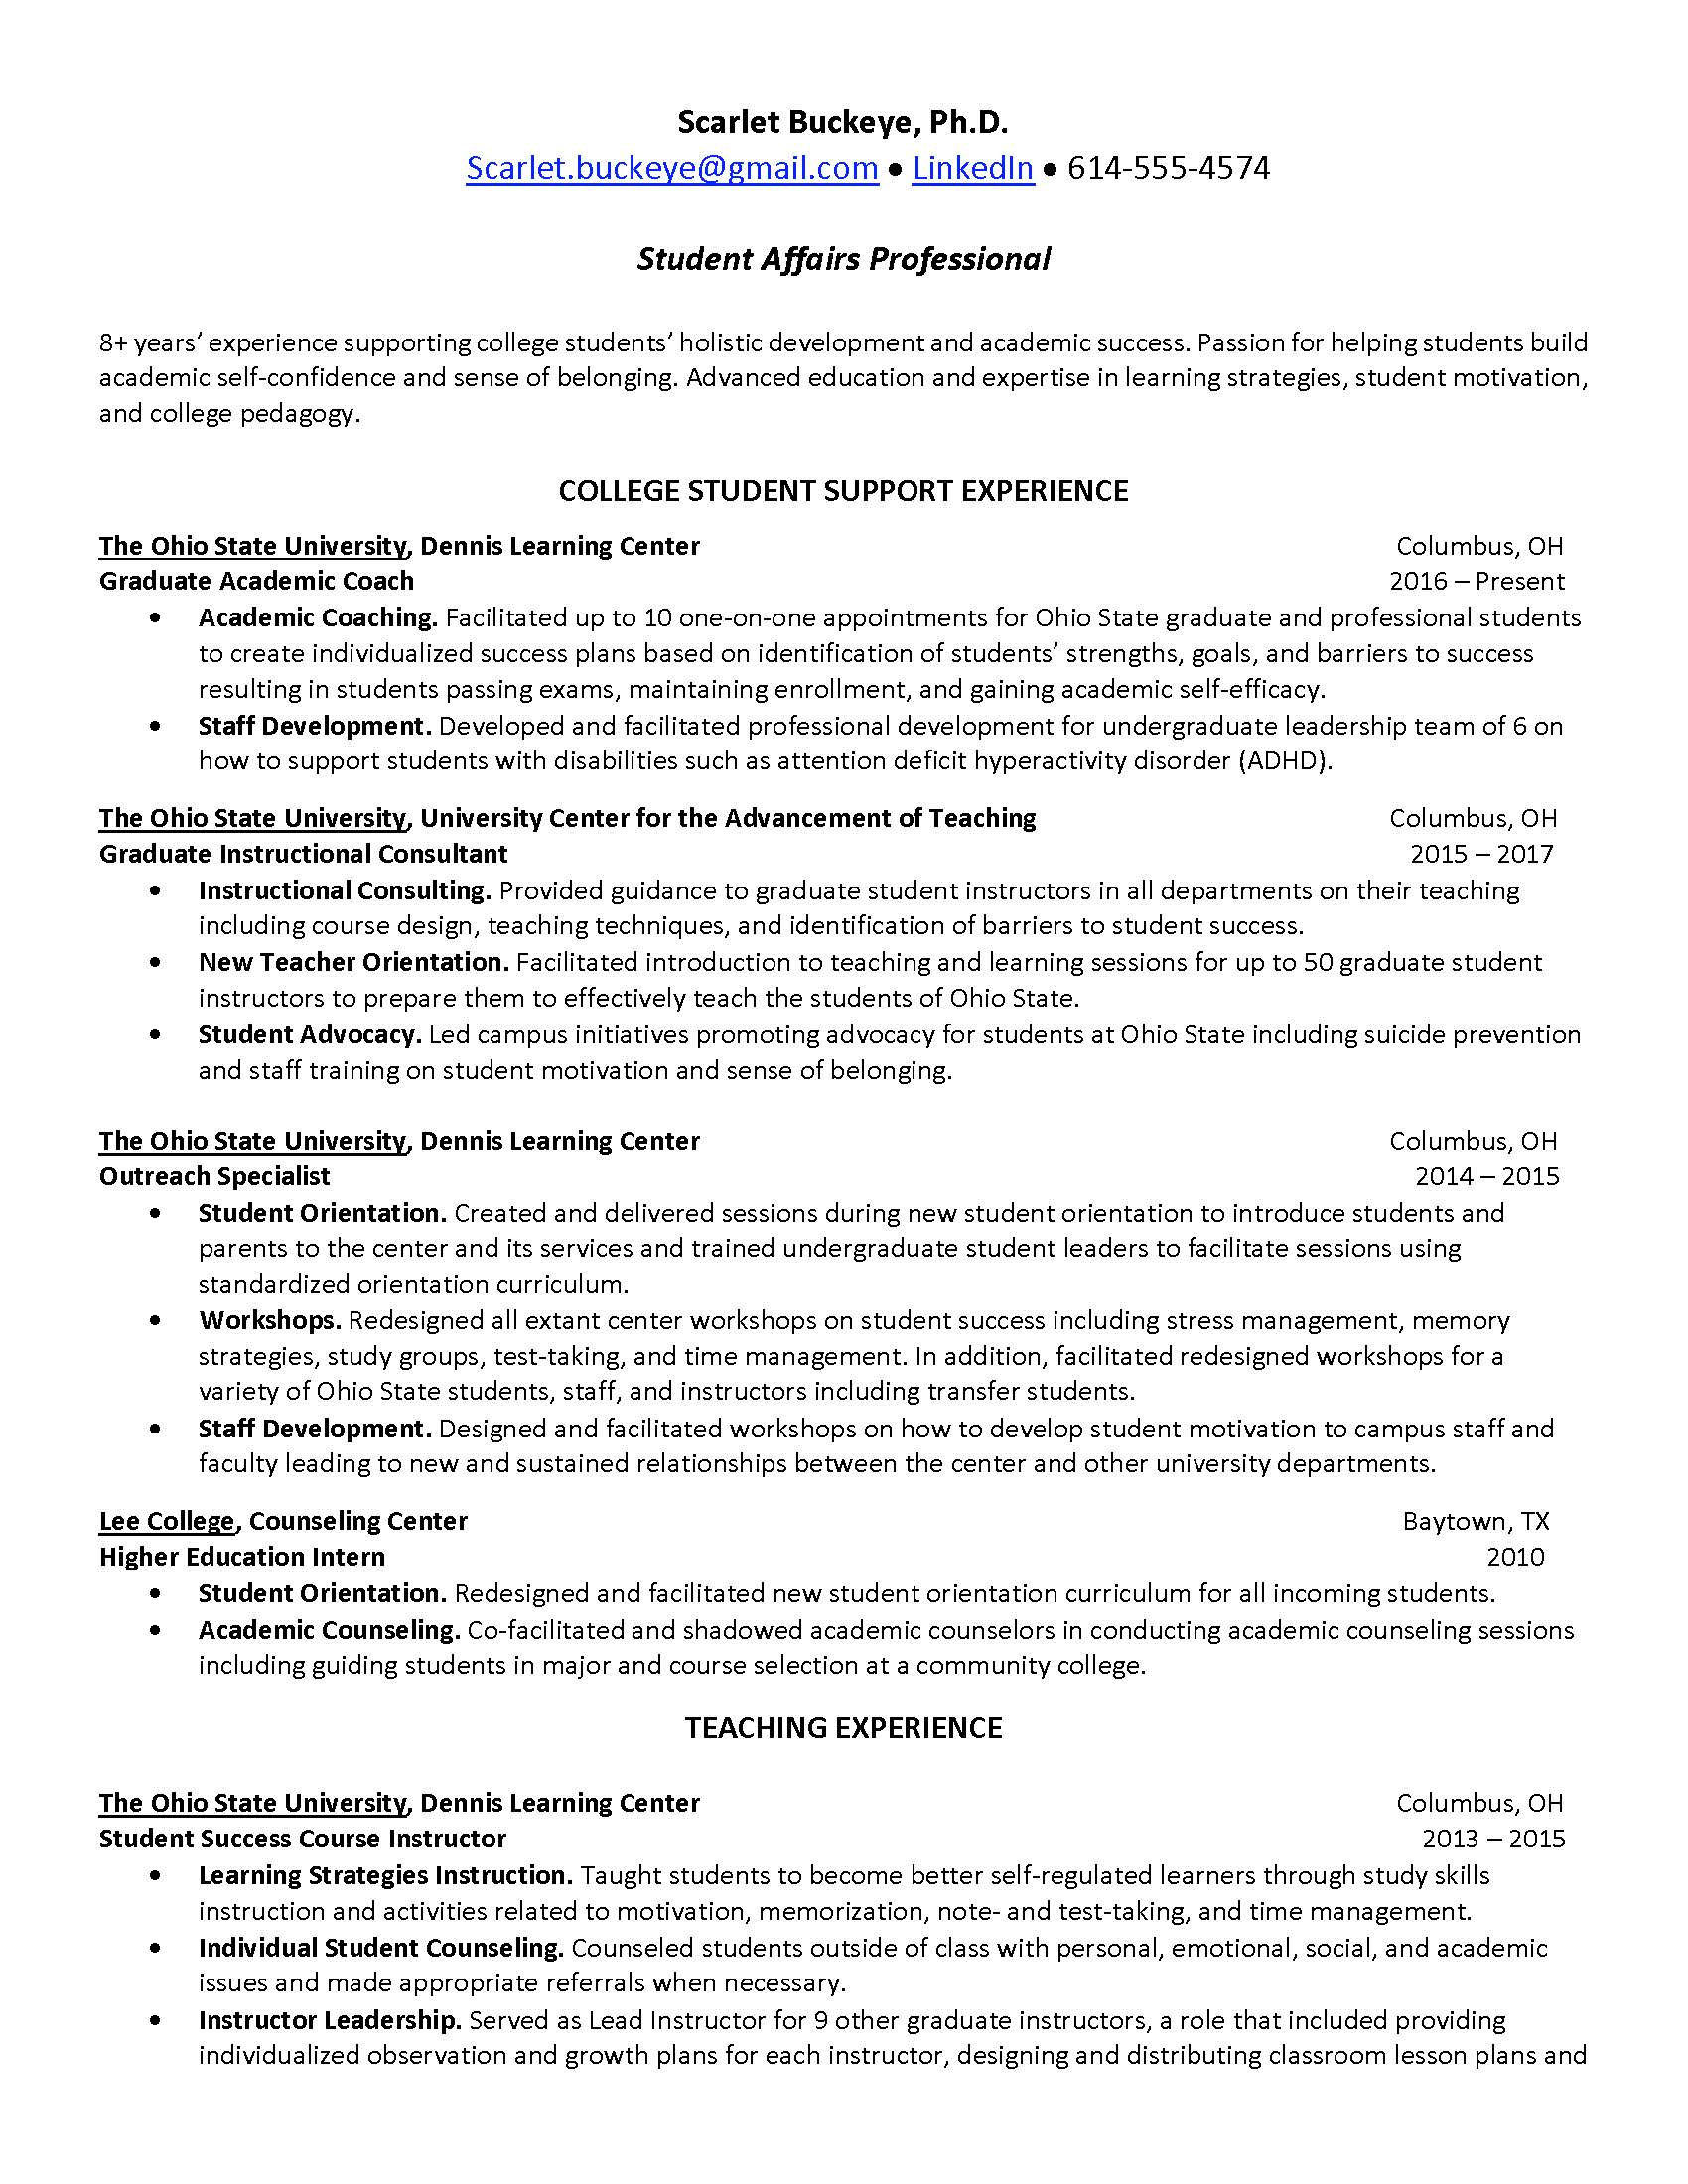 resume cover letter example for college students